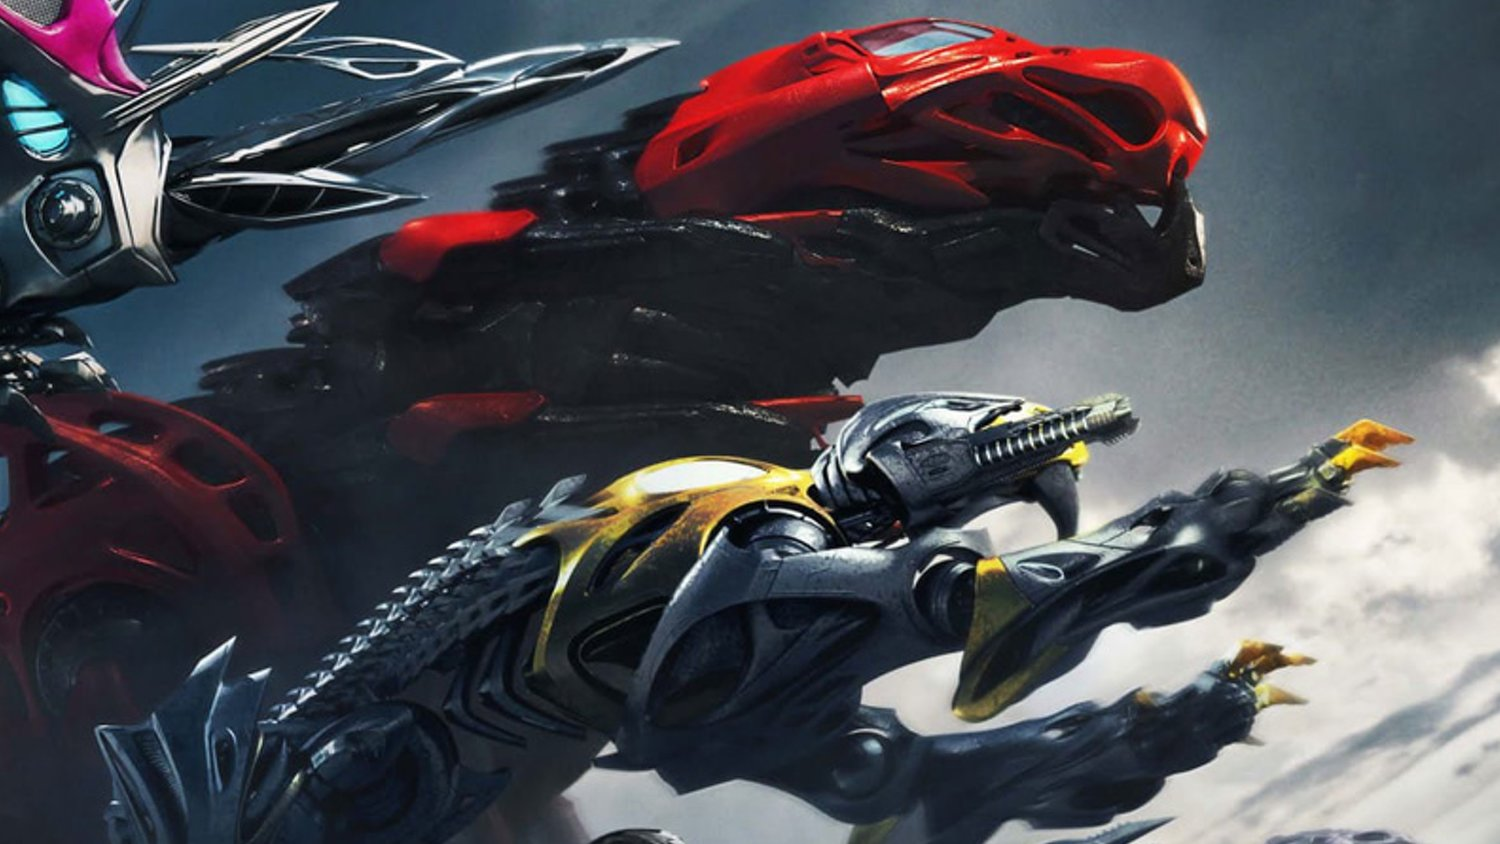 The Zords Rush Into Battle in New Poster for POWER RANGERS